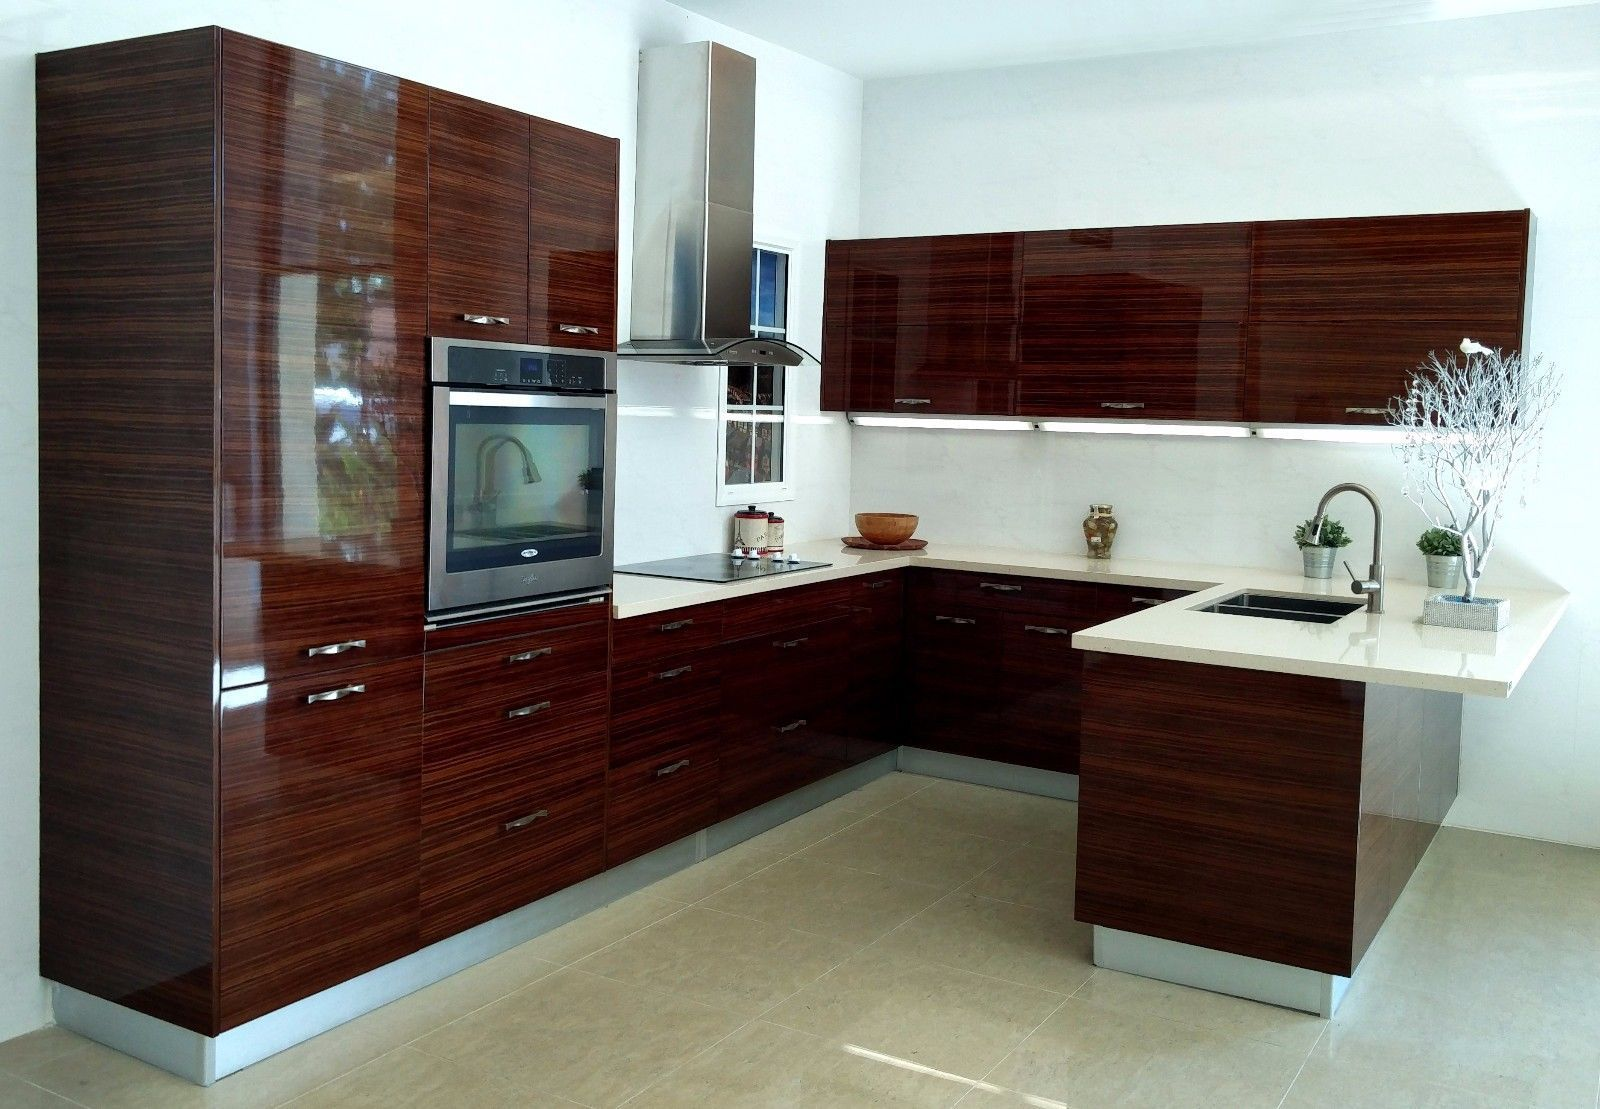 High Gloss Lacquer Acrylic Laminate Doors For Kitchen Cabinets European Style In 2020 Kitchen Cabinets European Style European Kitchen Cabinets Kitchen Cabinet Styles